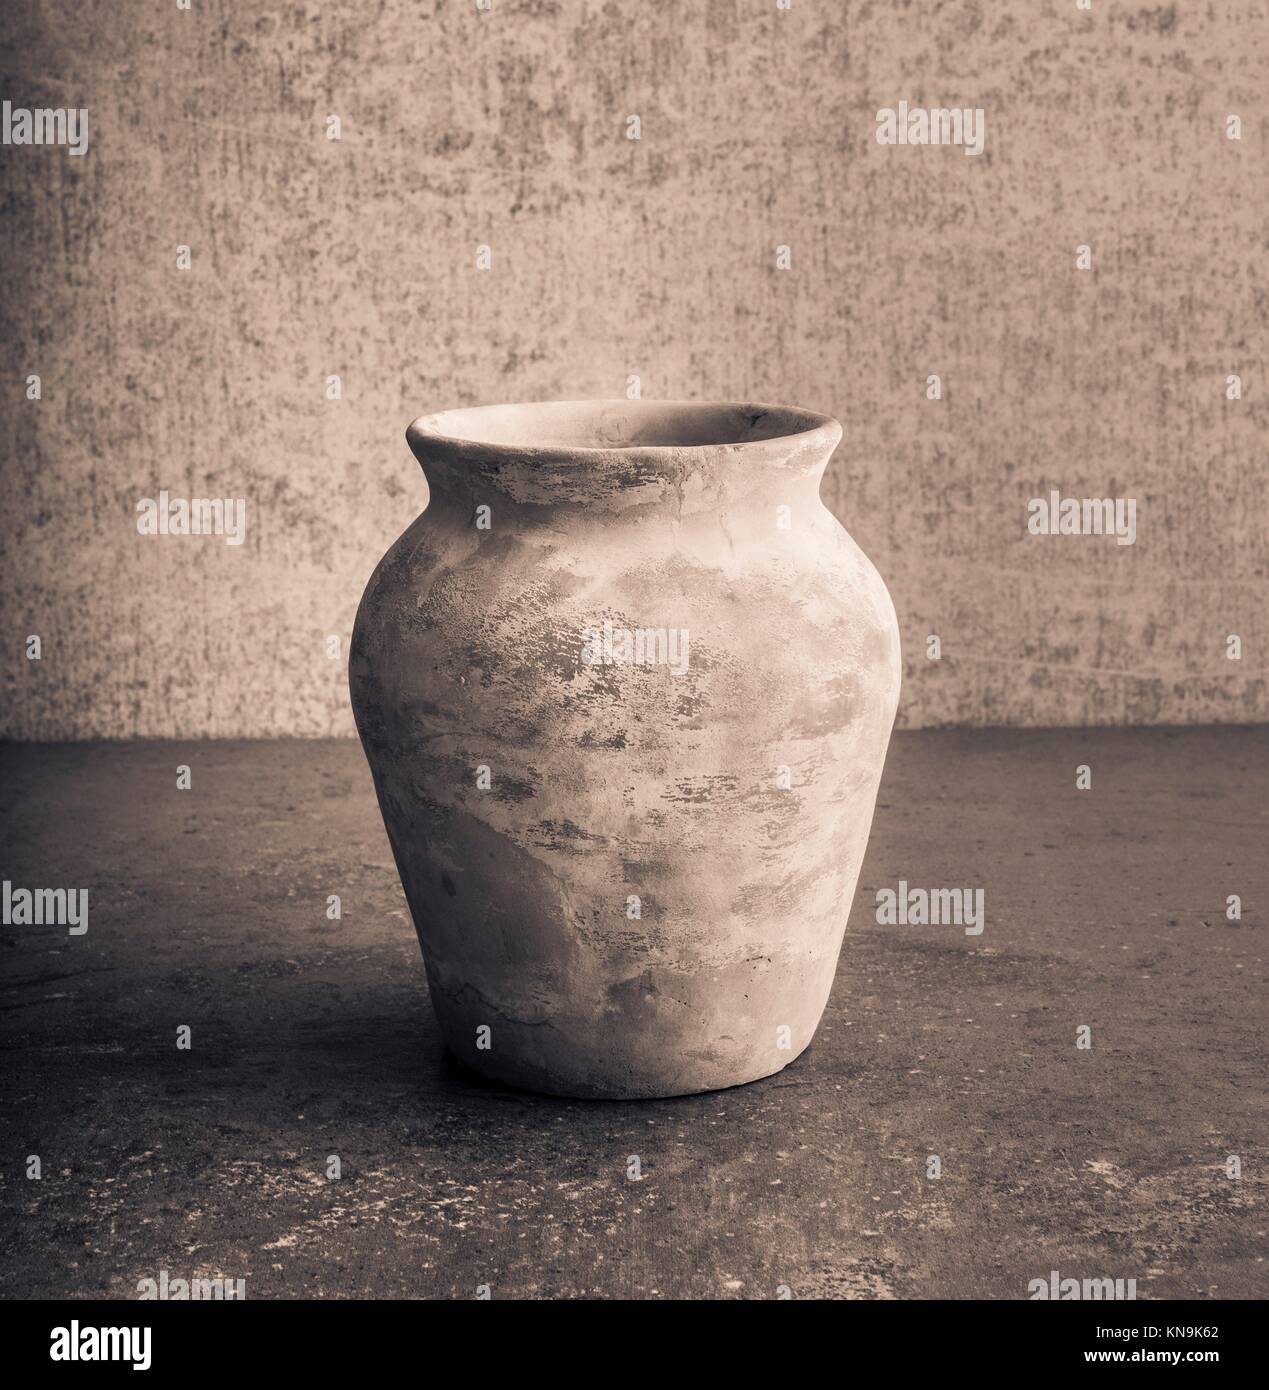 Old empty vase on stone table, still life. Concept of art, pottery object and vintage or antique decorative item. - Stock Image